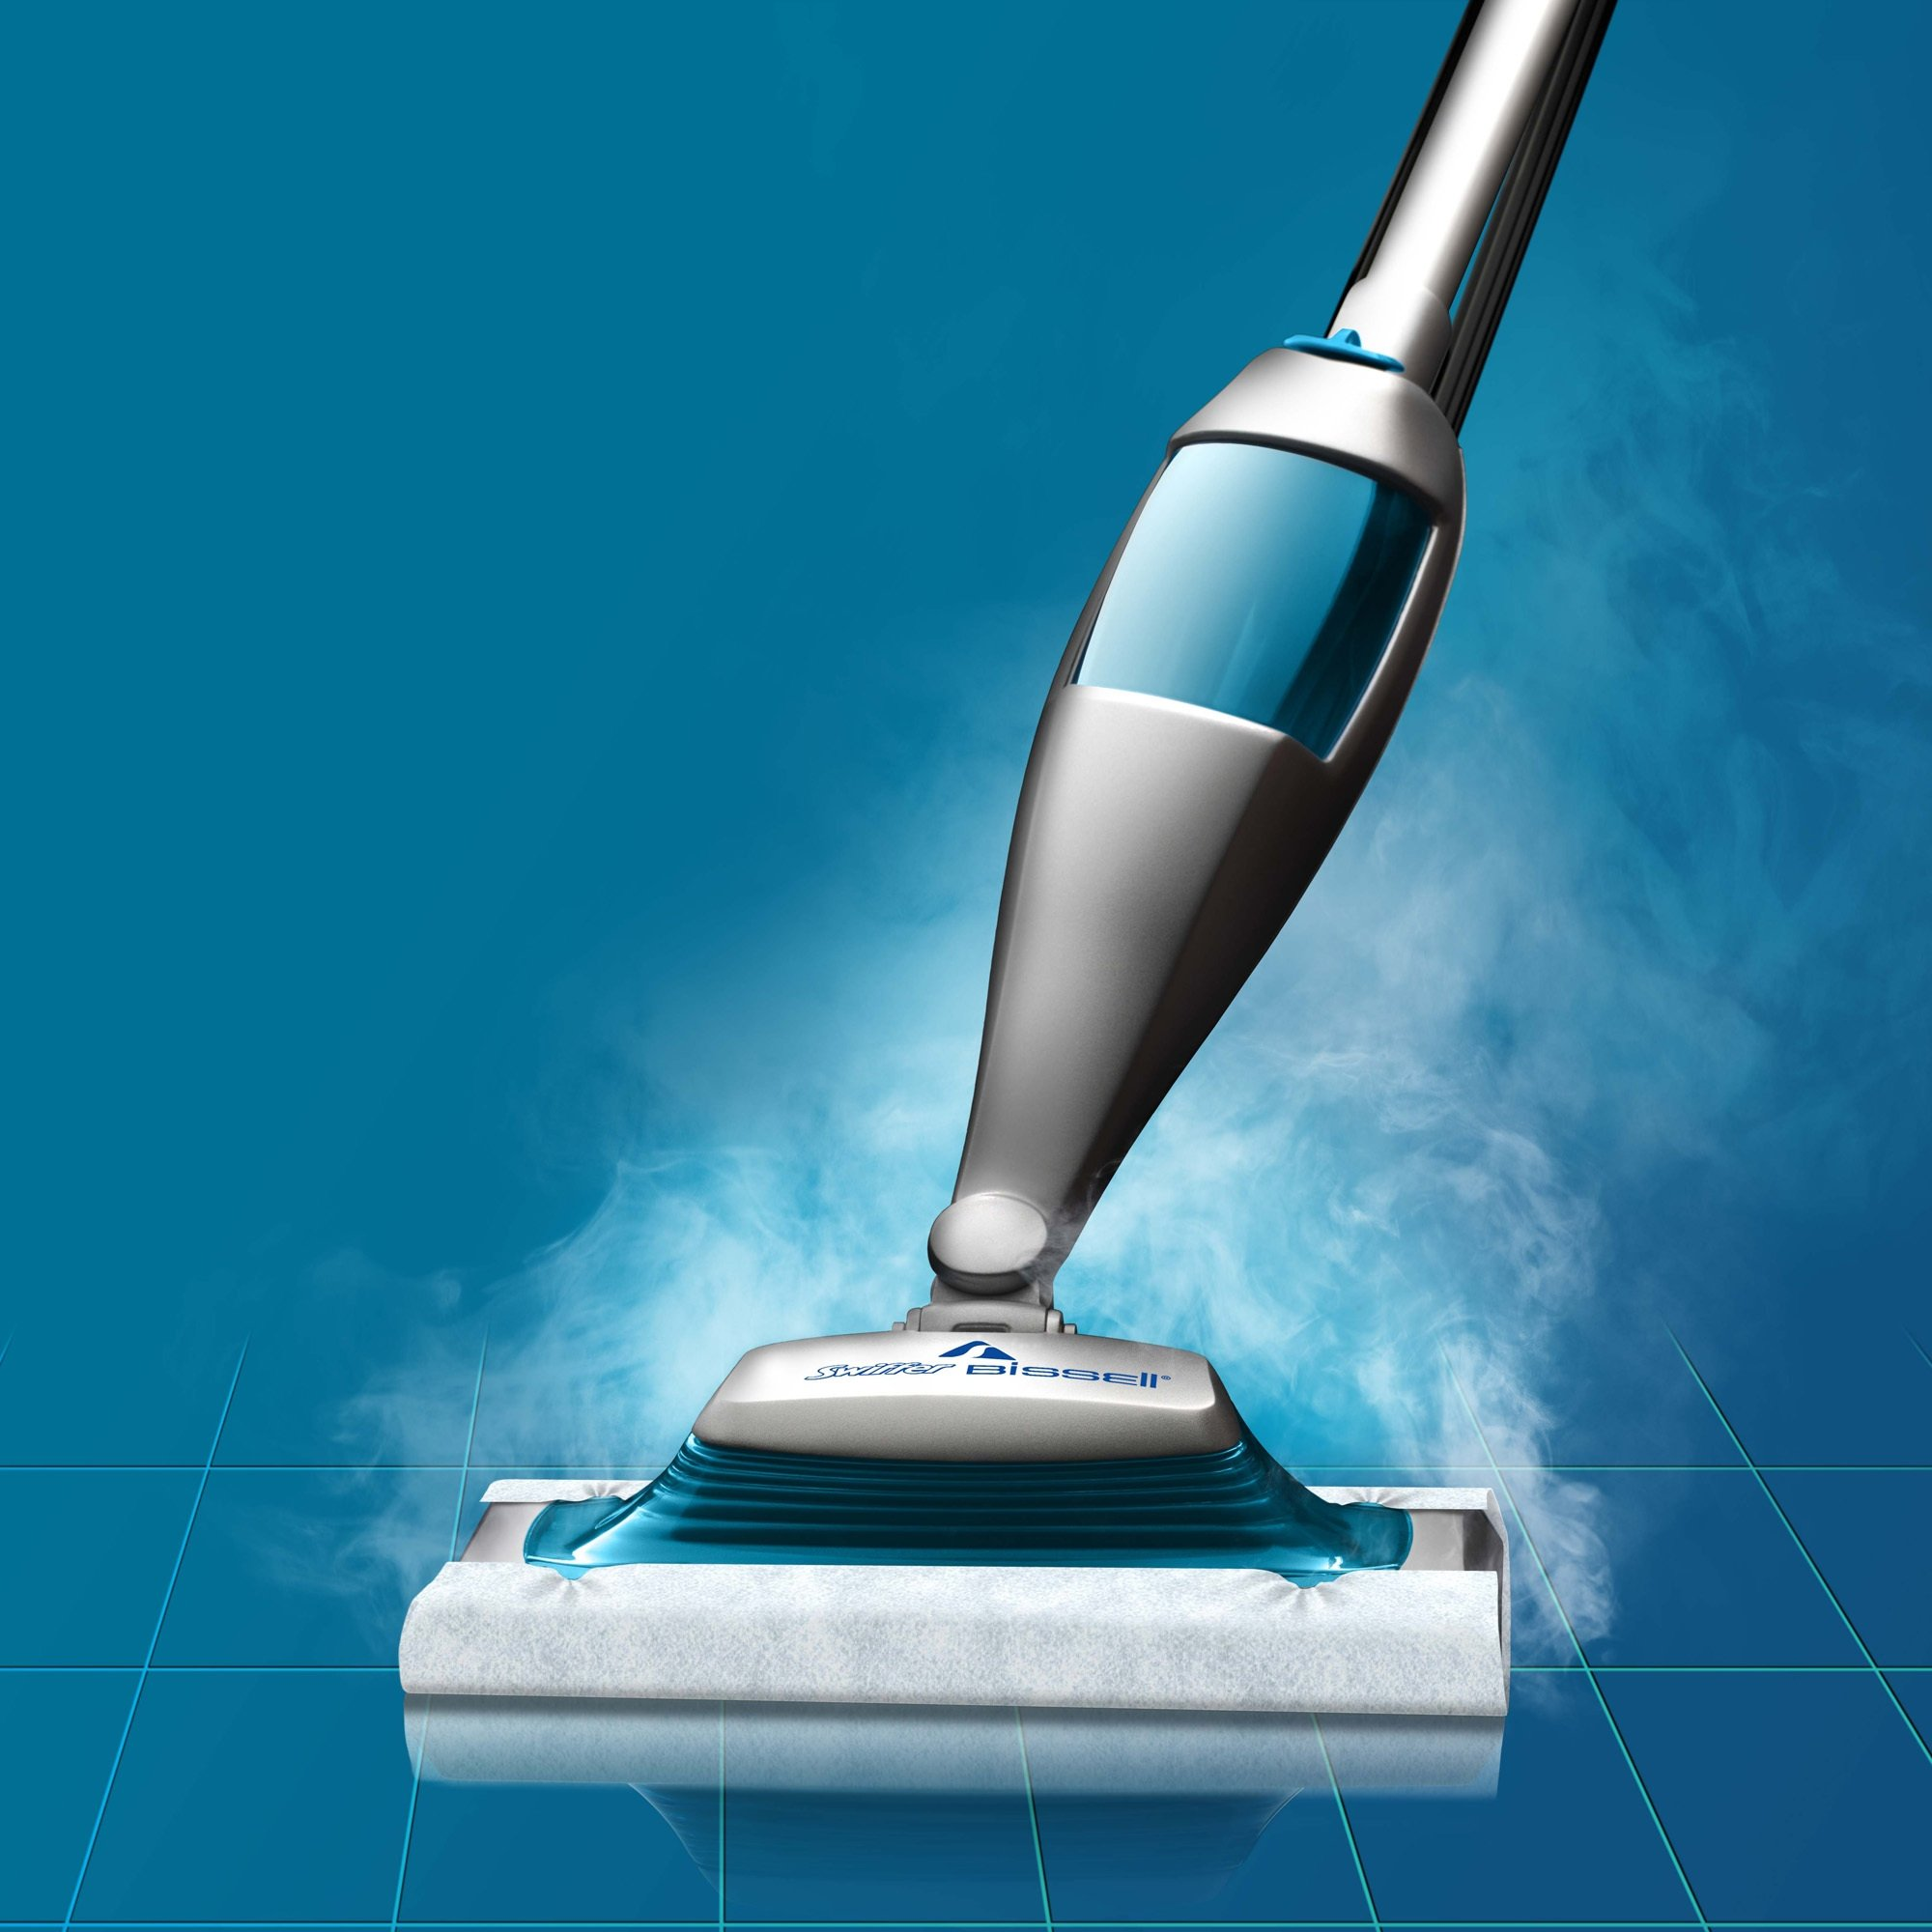 Swiffer SteamBoost Deep Cleaning Steam Mop Starter Kit, Powered by Bissel, Hardwood and Floor Cleaner, Includes: 1 Steam Mop, 2 Steam Mopping Cloth by Swiffer (Image #4)